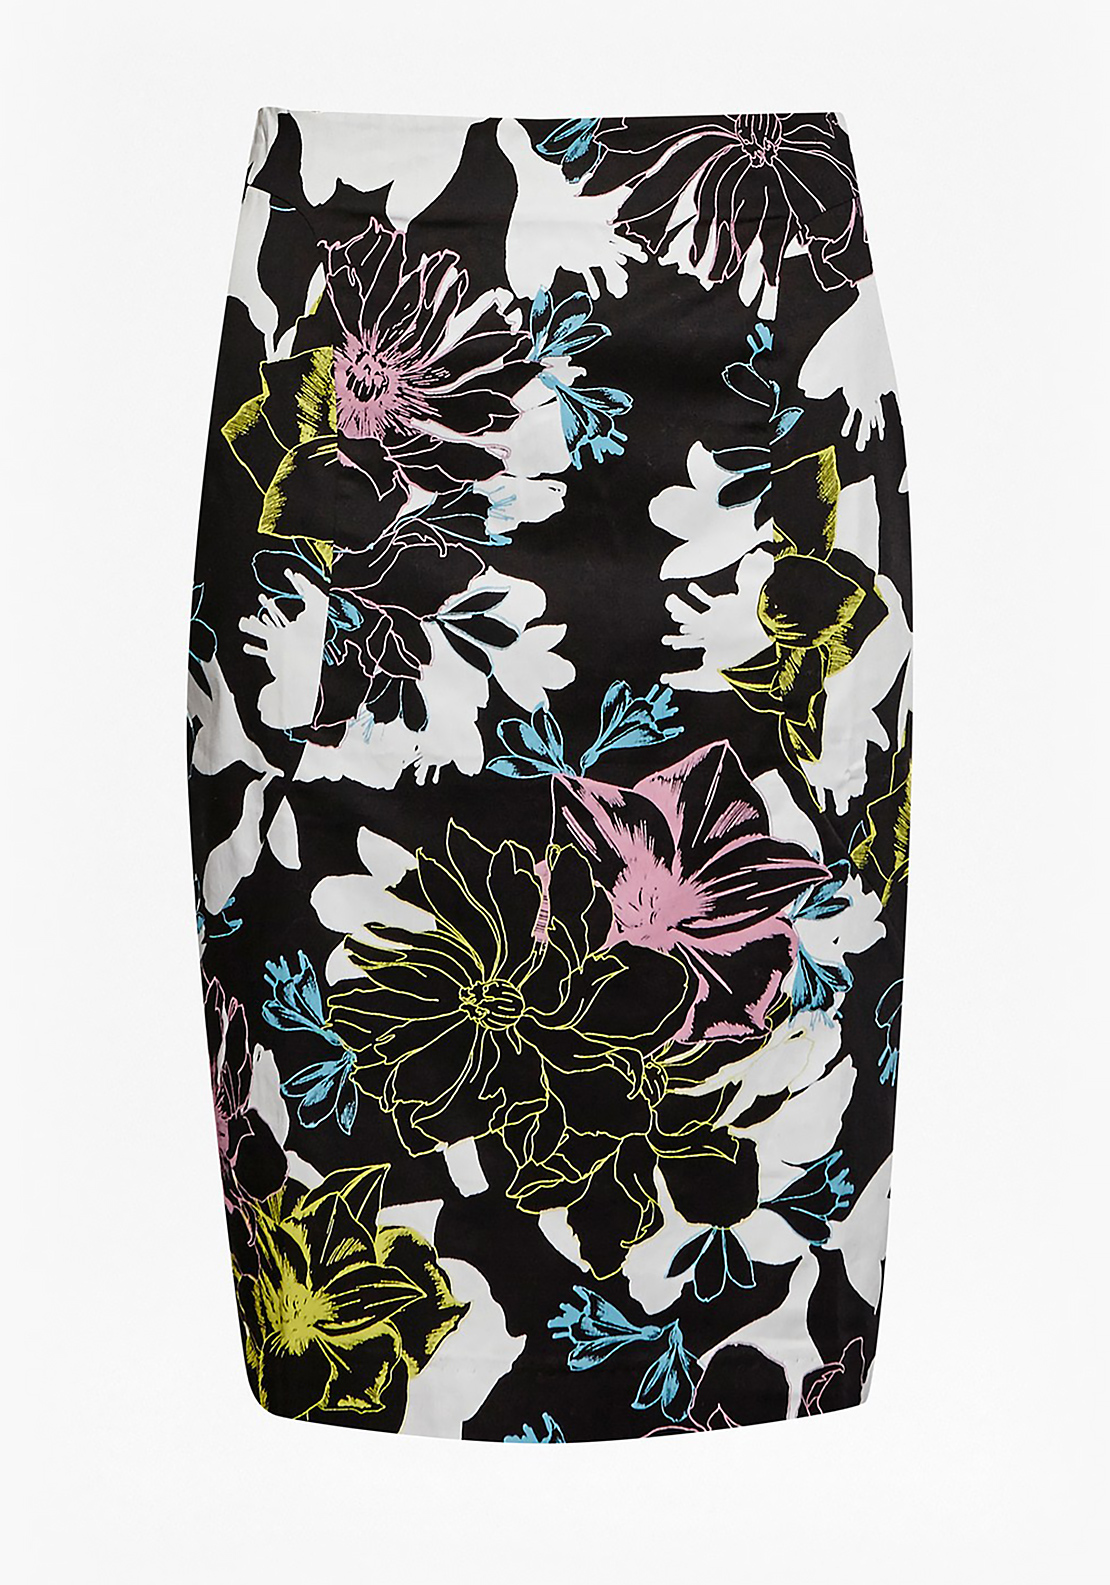 French Connection Botanical Print Pencil Skirt, Black Multi